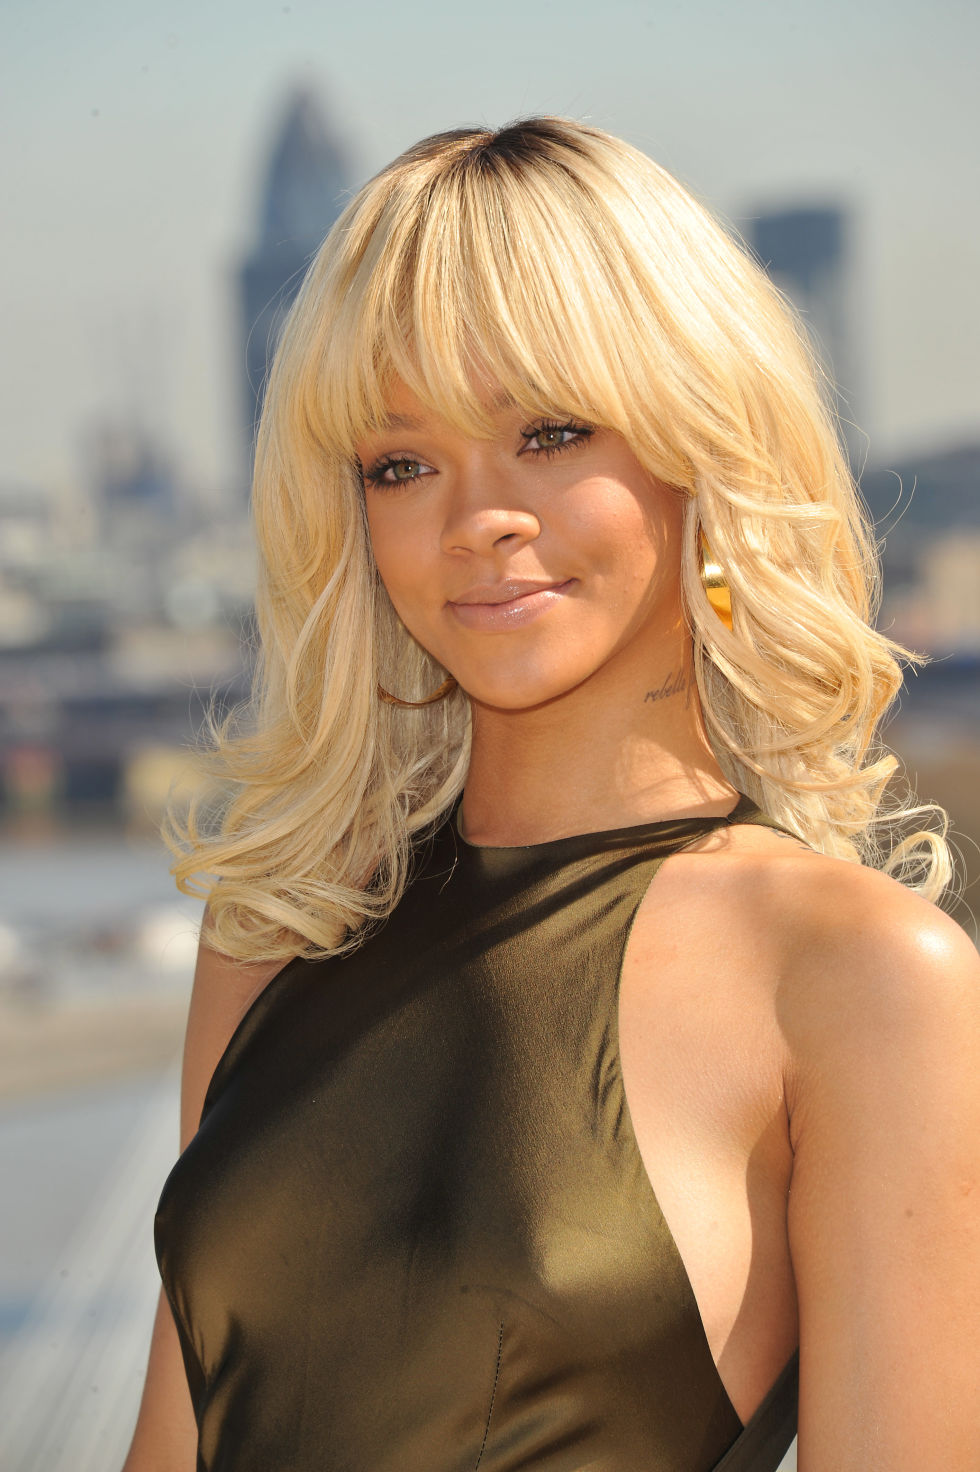 Astonishing 35 Shades Of Blonde Hair The Ultimate Blonde Hair Color Guide Short Hairstyles For Black Women Fulllsitofus